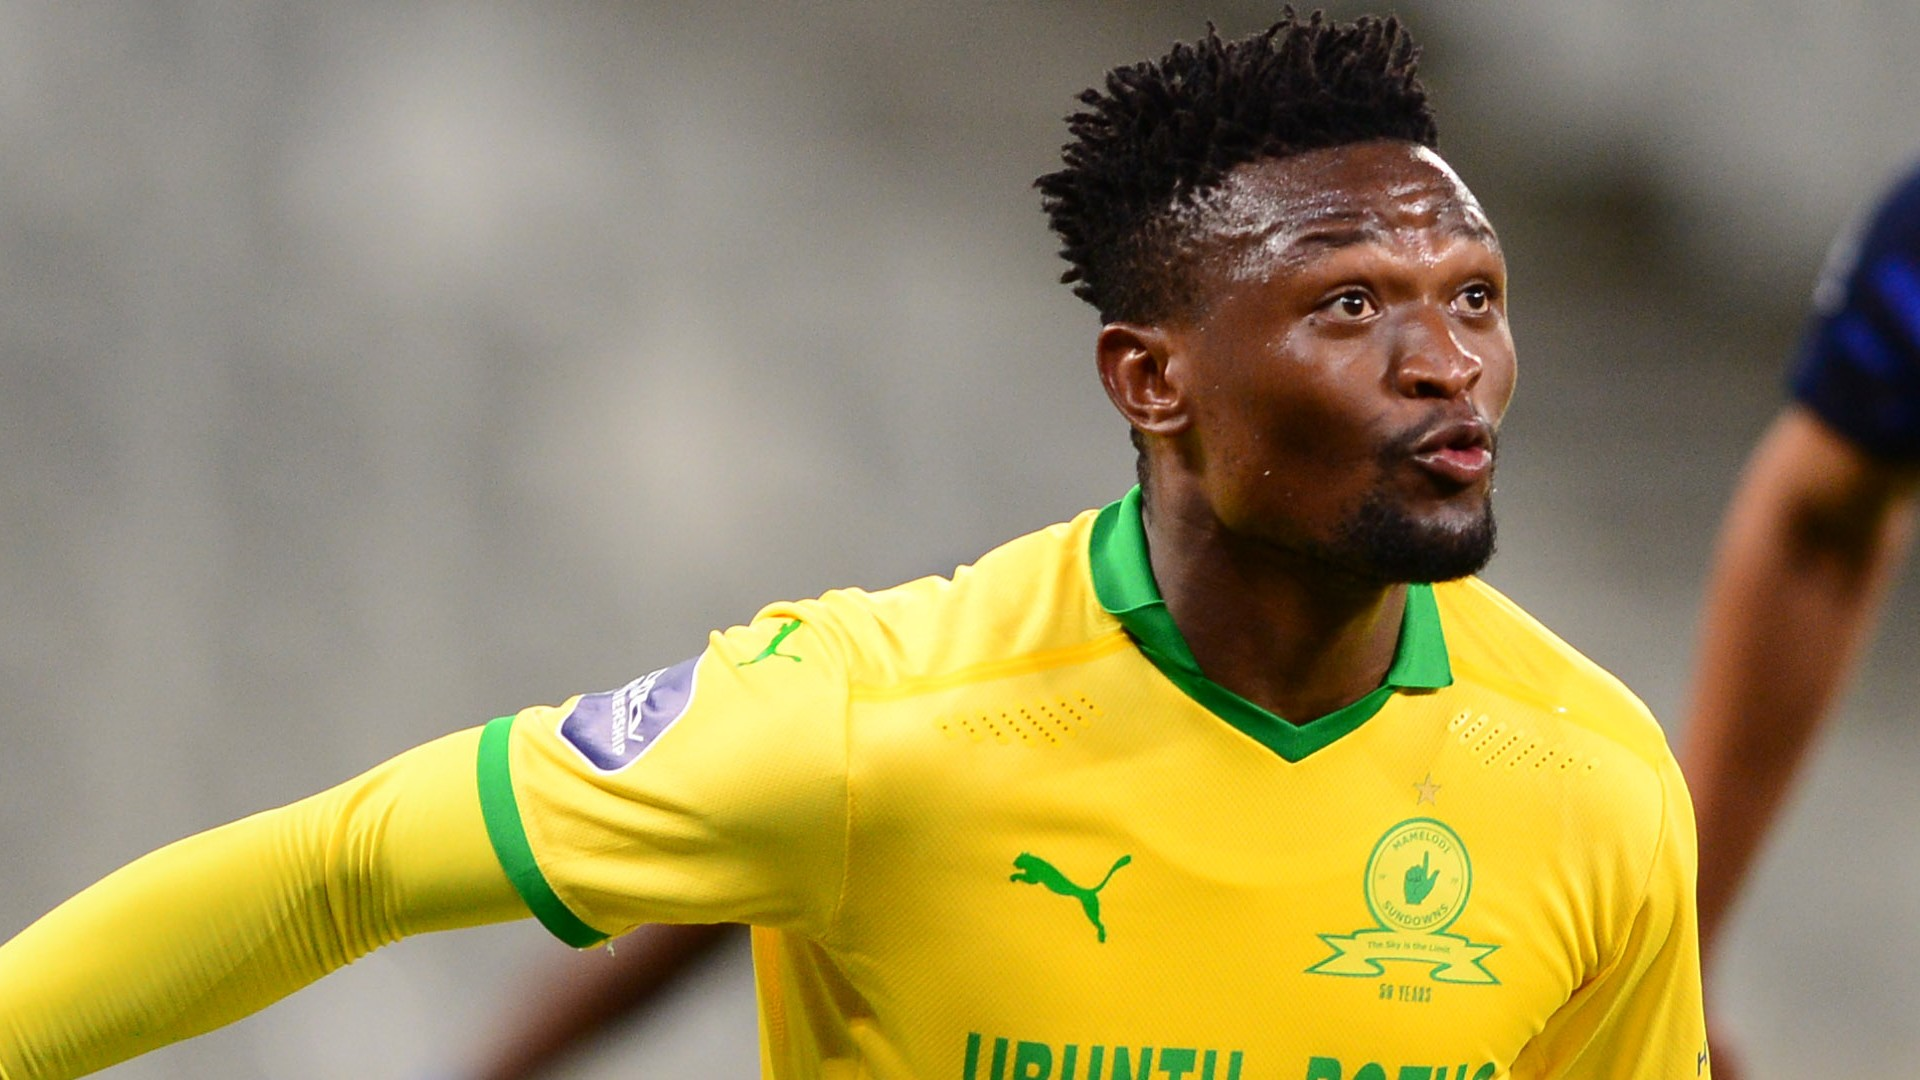 Mamelodi Sundowns announce 'period of uncertainty' as Madisha death takes new twist